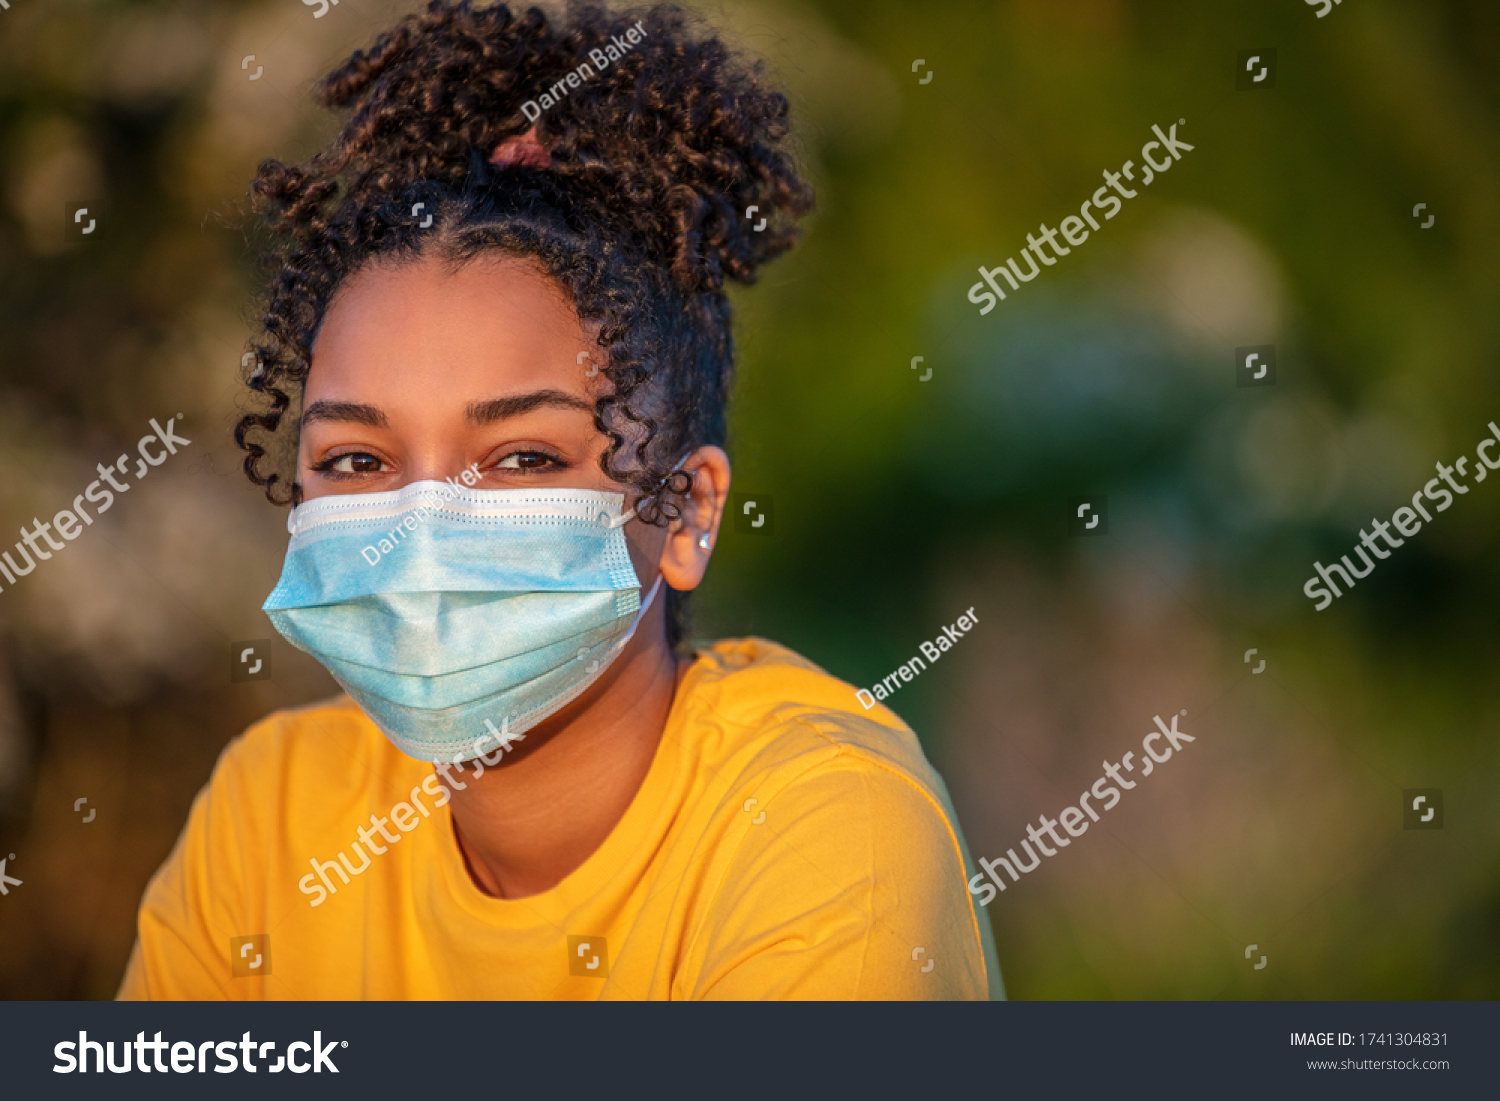 Mixed race African American teenager teen girl young woman wearing a face mask outside during the Coronavirus COVID-19 virus pandemic